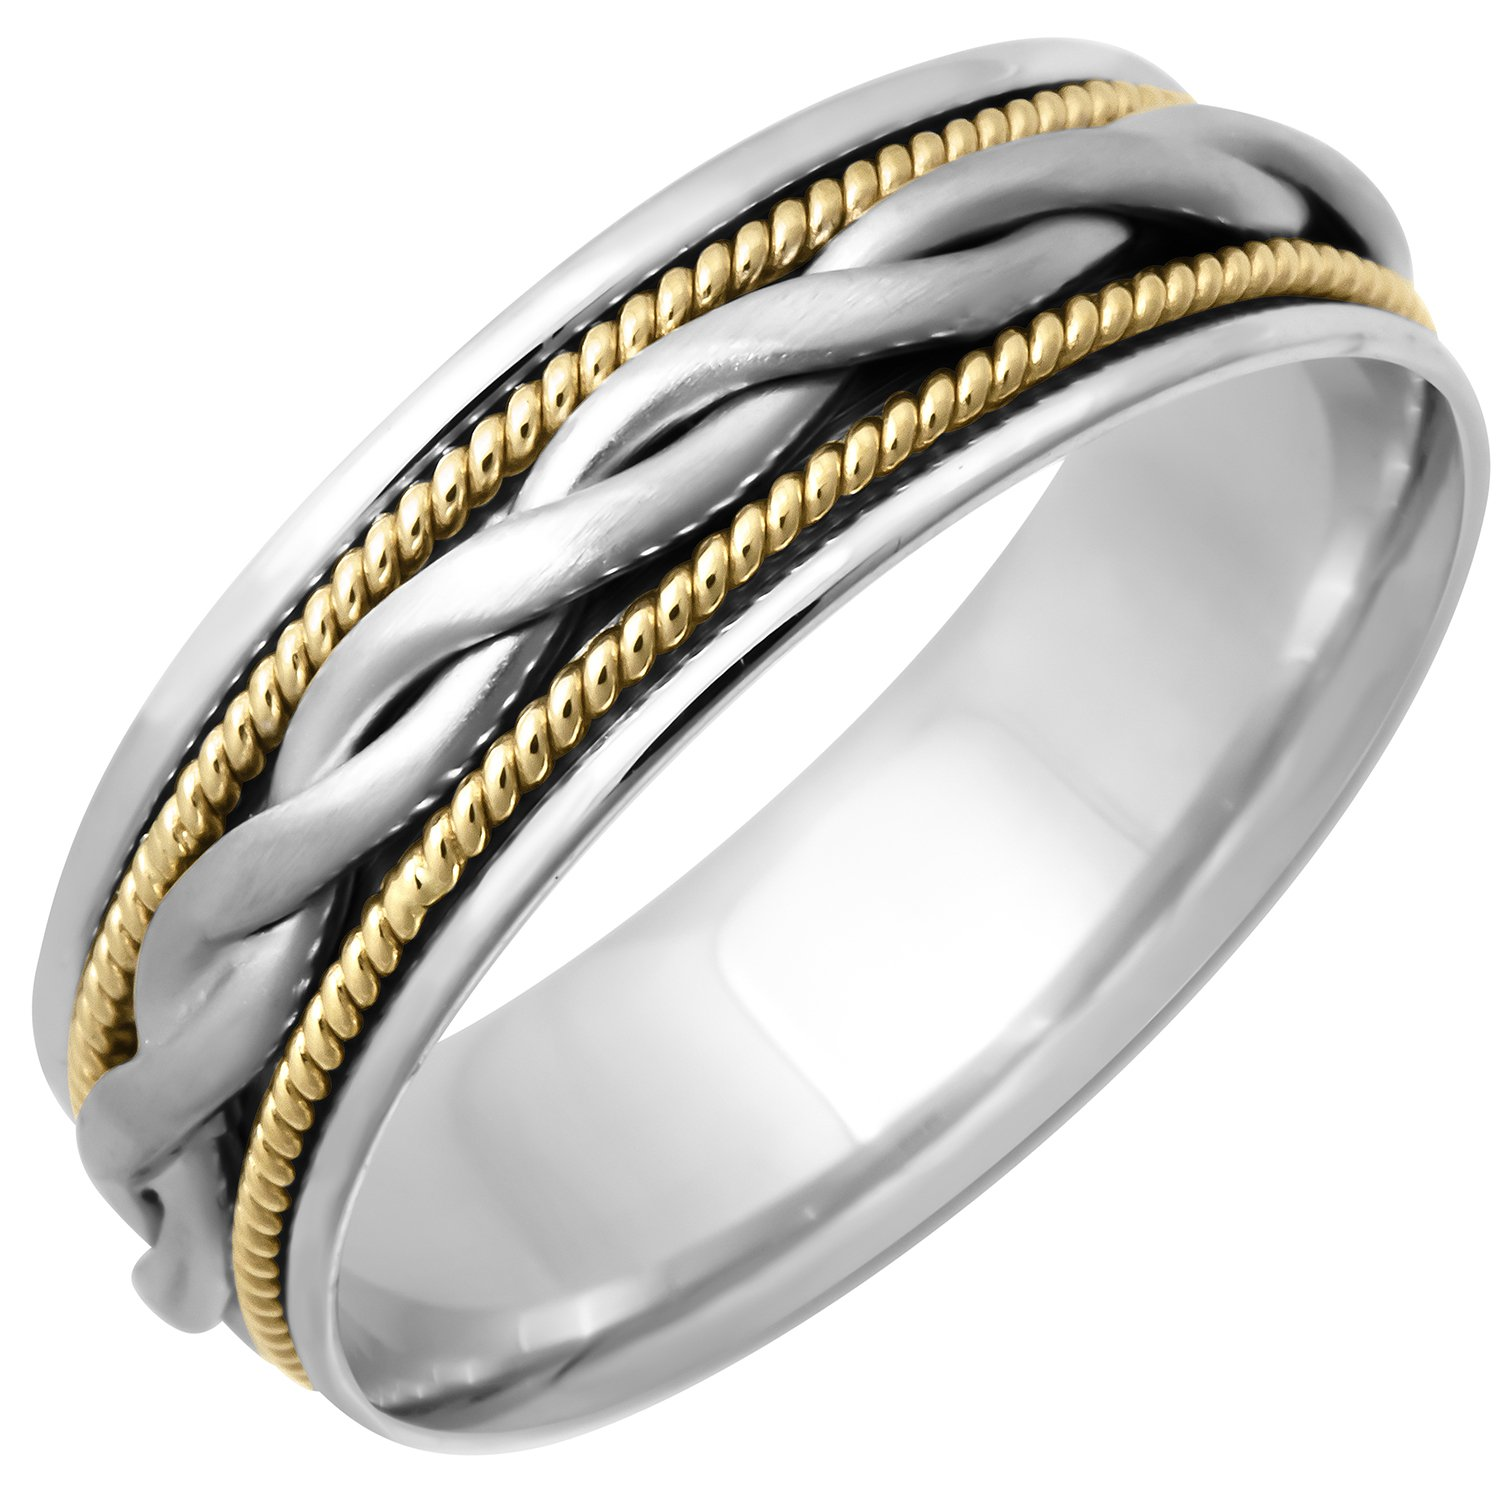 14K Two Tone (White and Yellow) Gold Braided Coil Twist Men's Wedding Band (7mm) Size-10.5c1